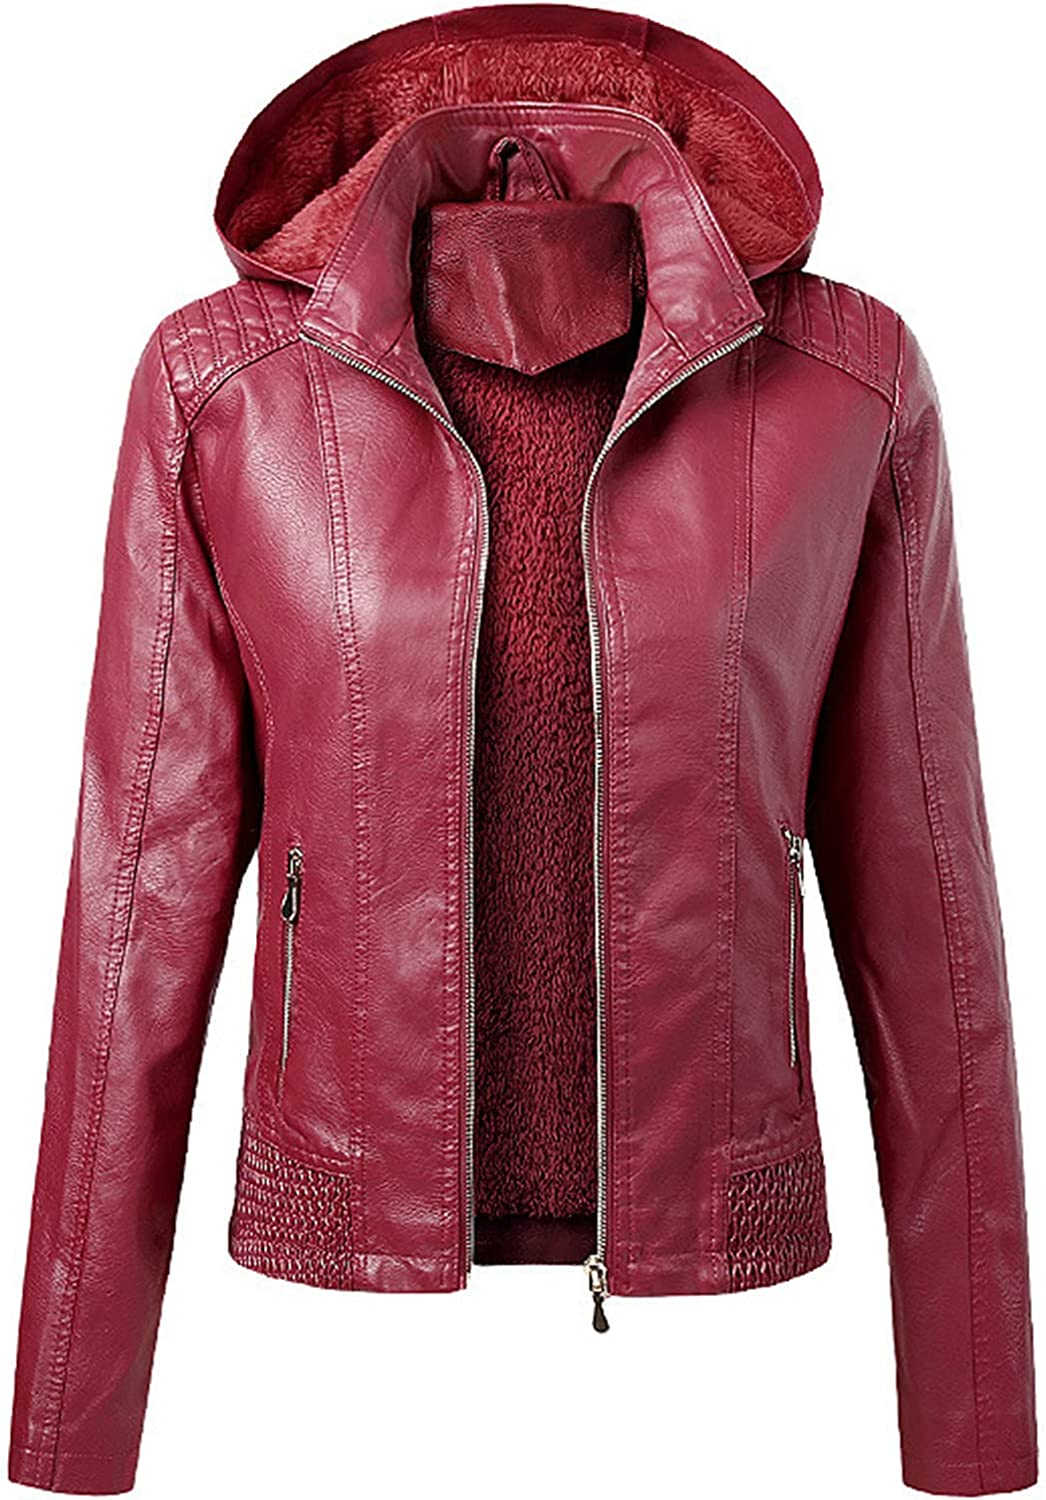 Women Lapel Leather Jacket Windproof Hooded Warm Charlotte Mall Chicago Mall Z Bomber